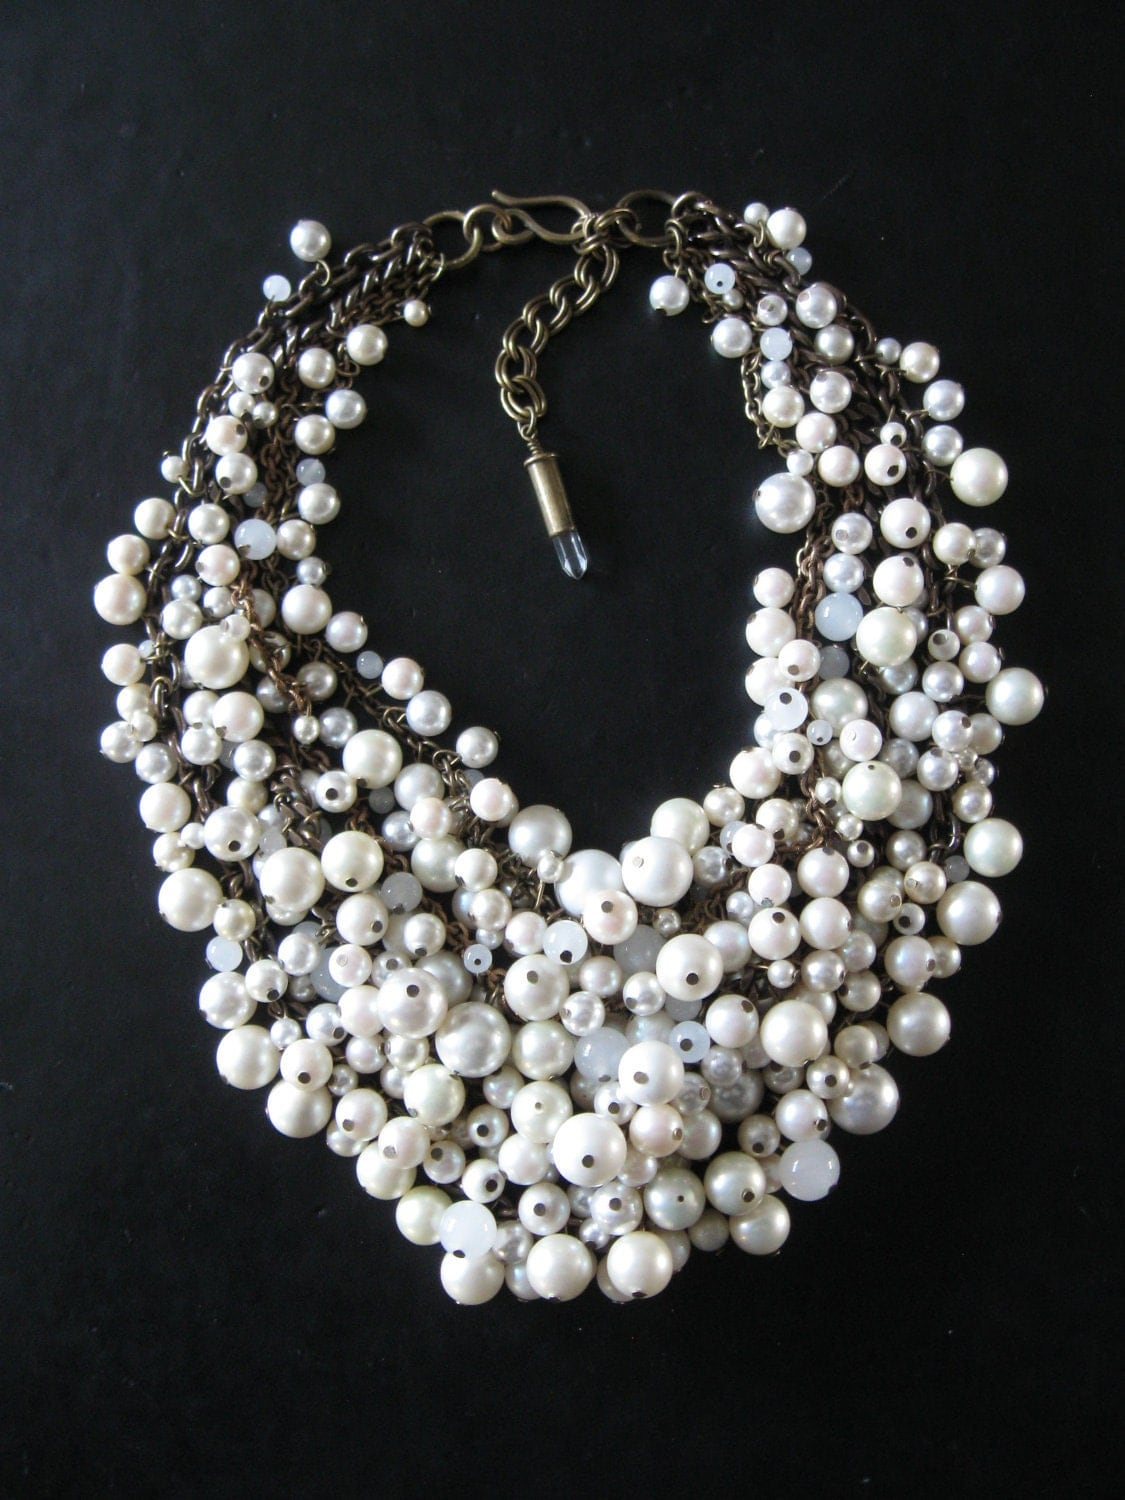 Pearl Statement Necklace Mermaid Farts Creamy White and